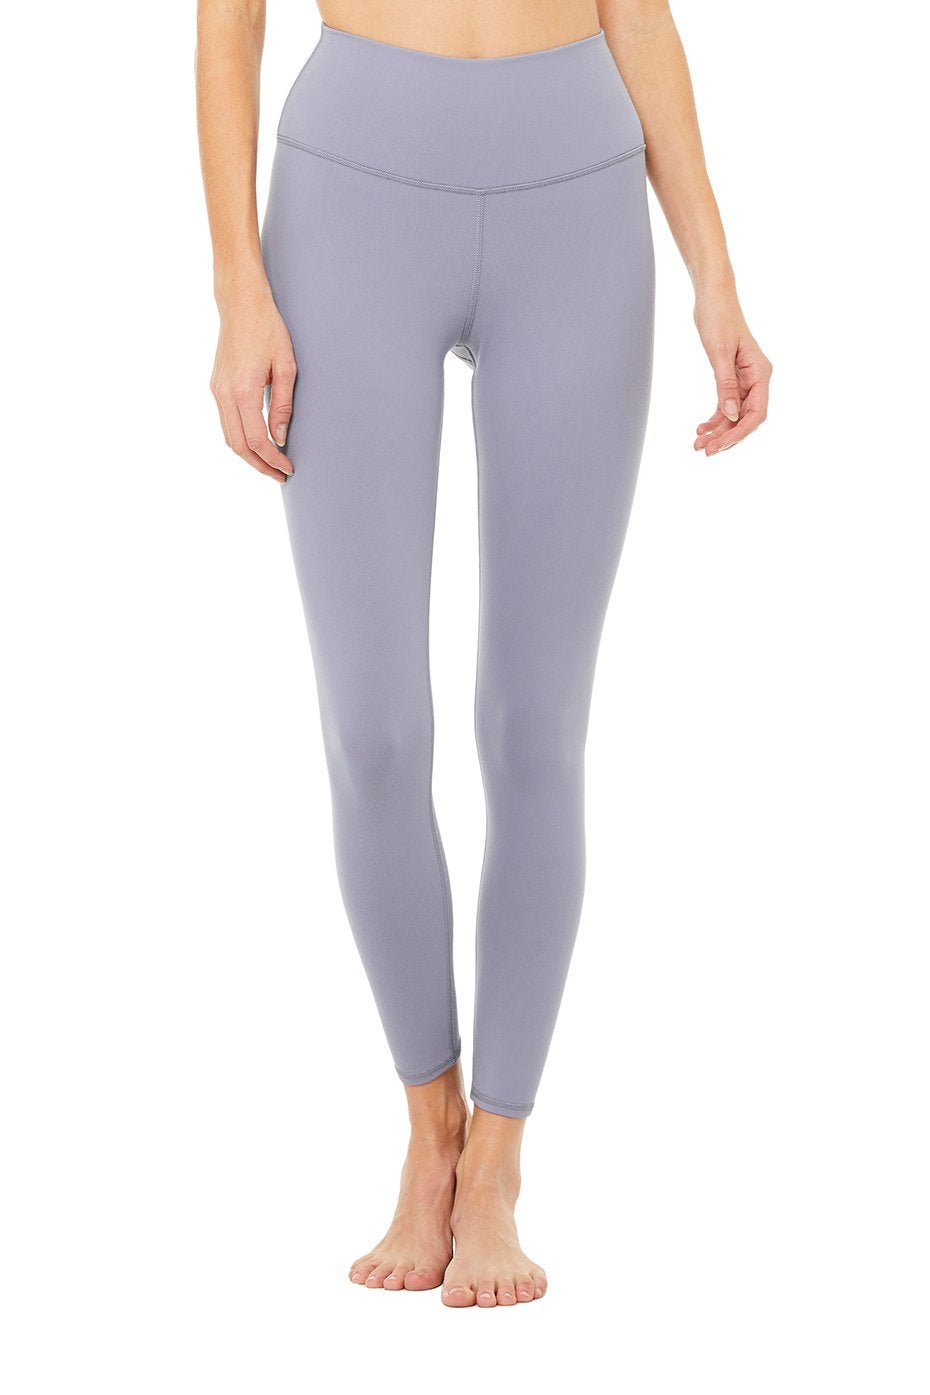 High-Waist Airbrush Legging Blue Moon